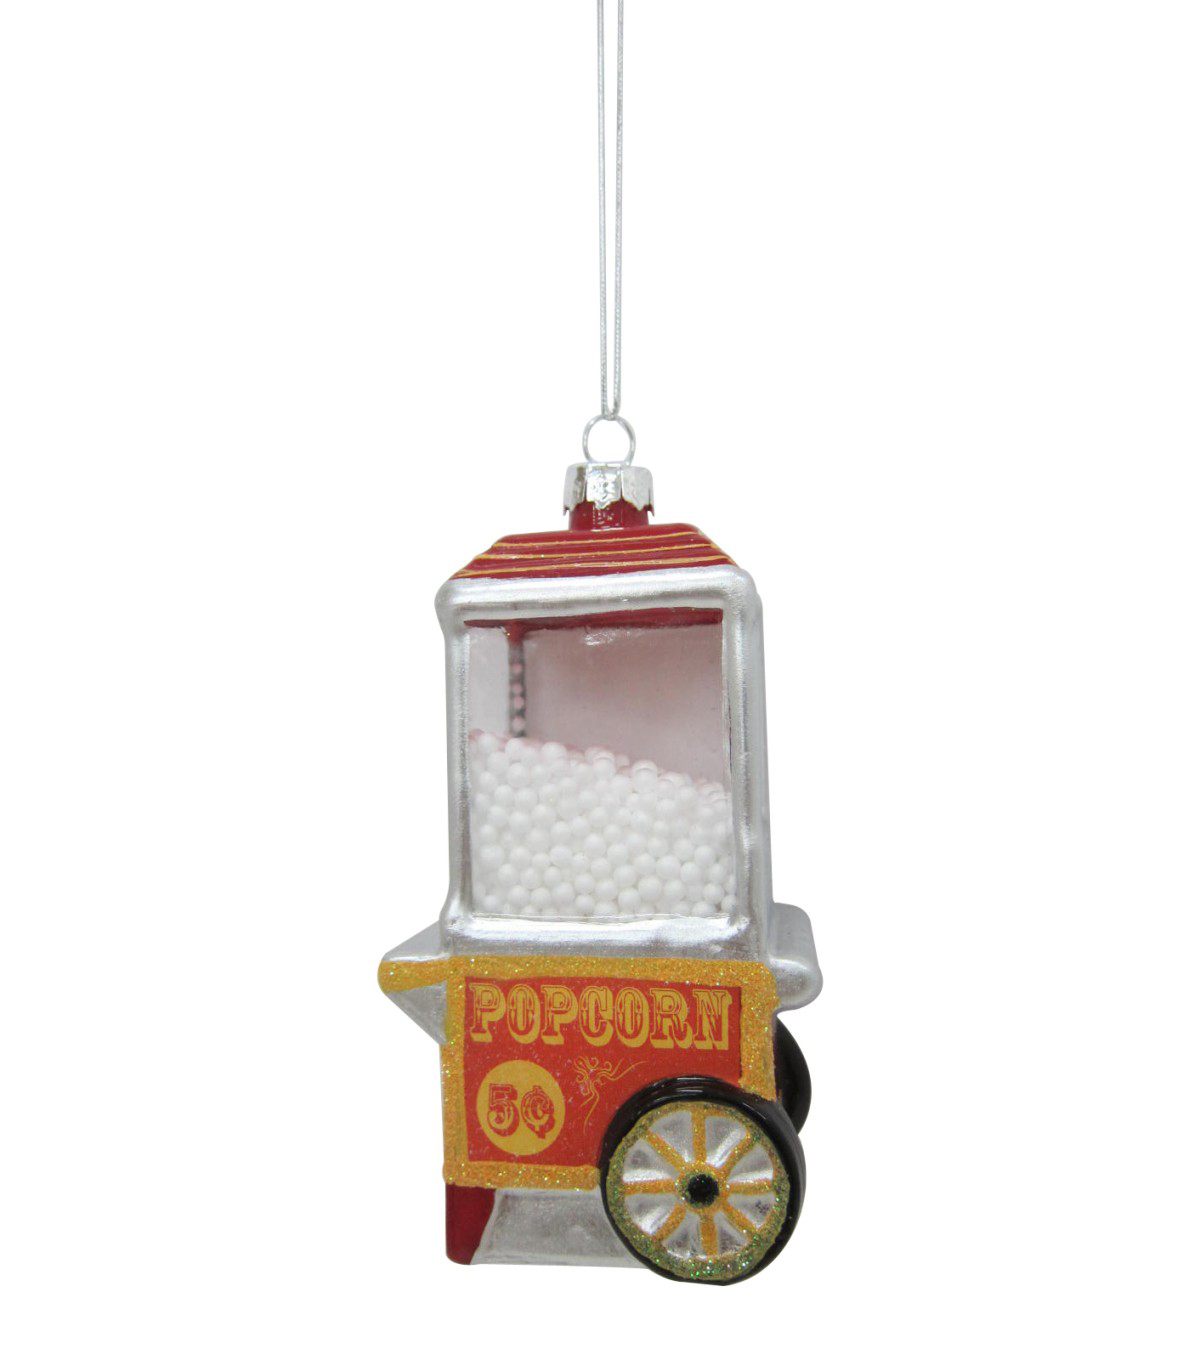 Maker's Holiday Christmas Popcorn Machine Ornament